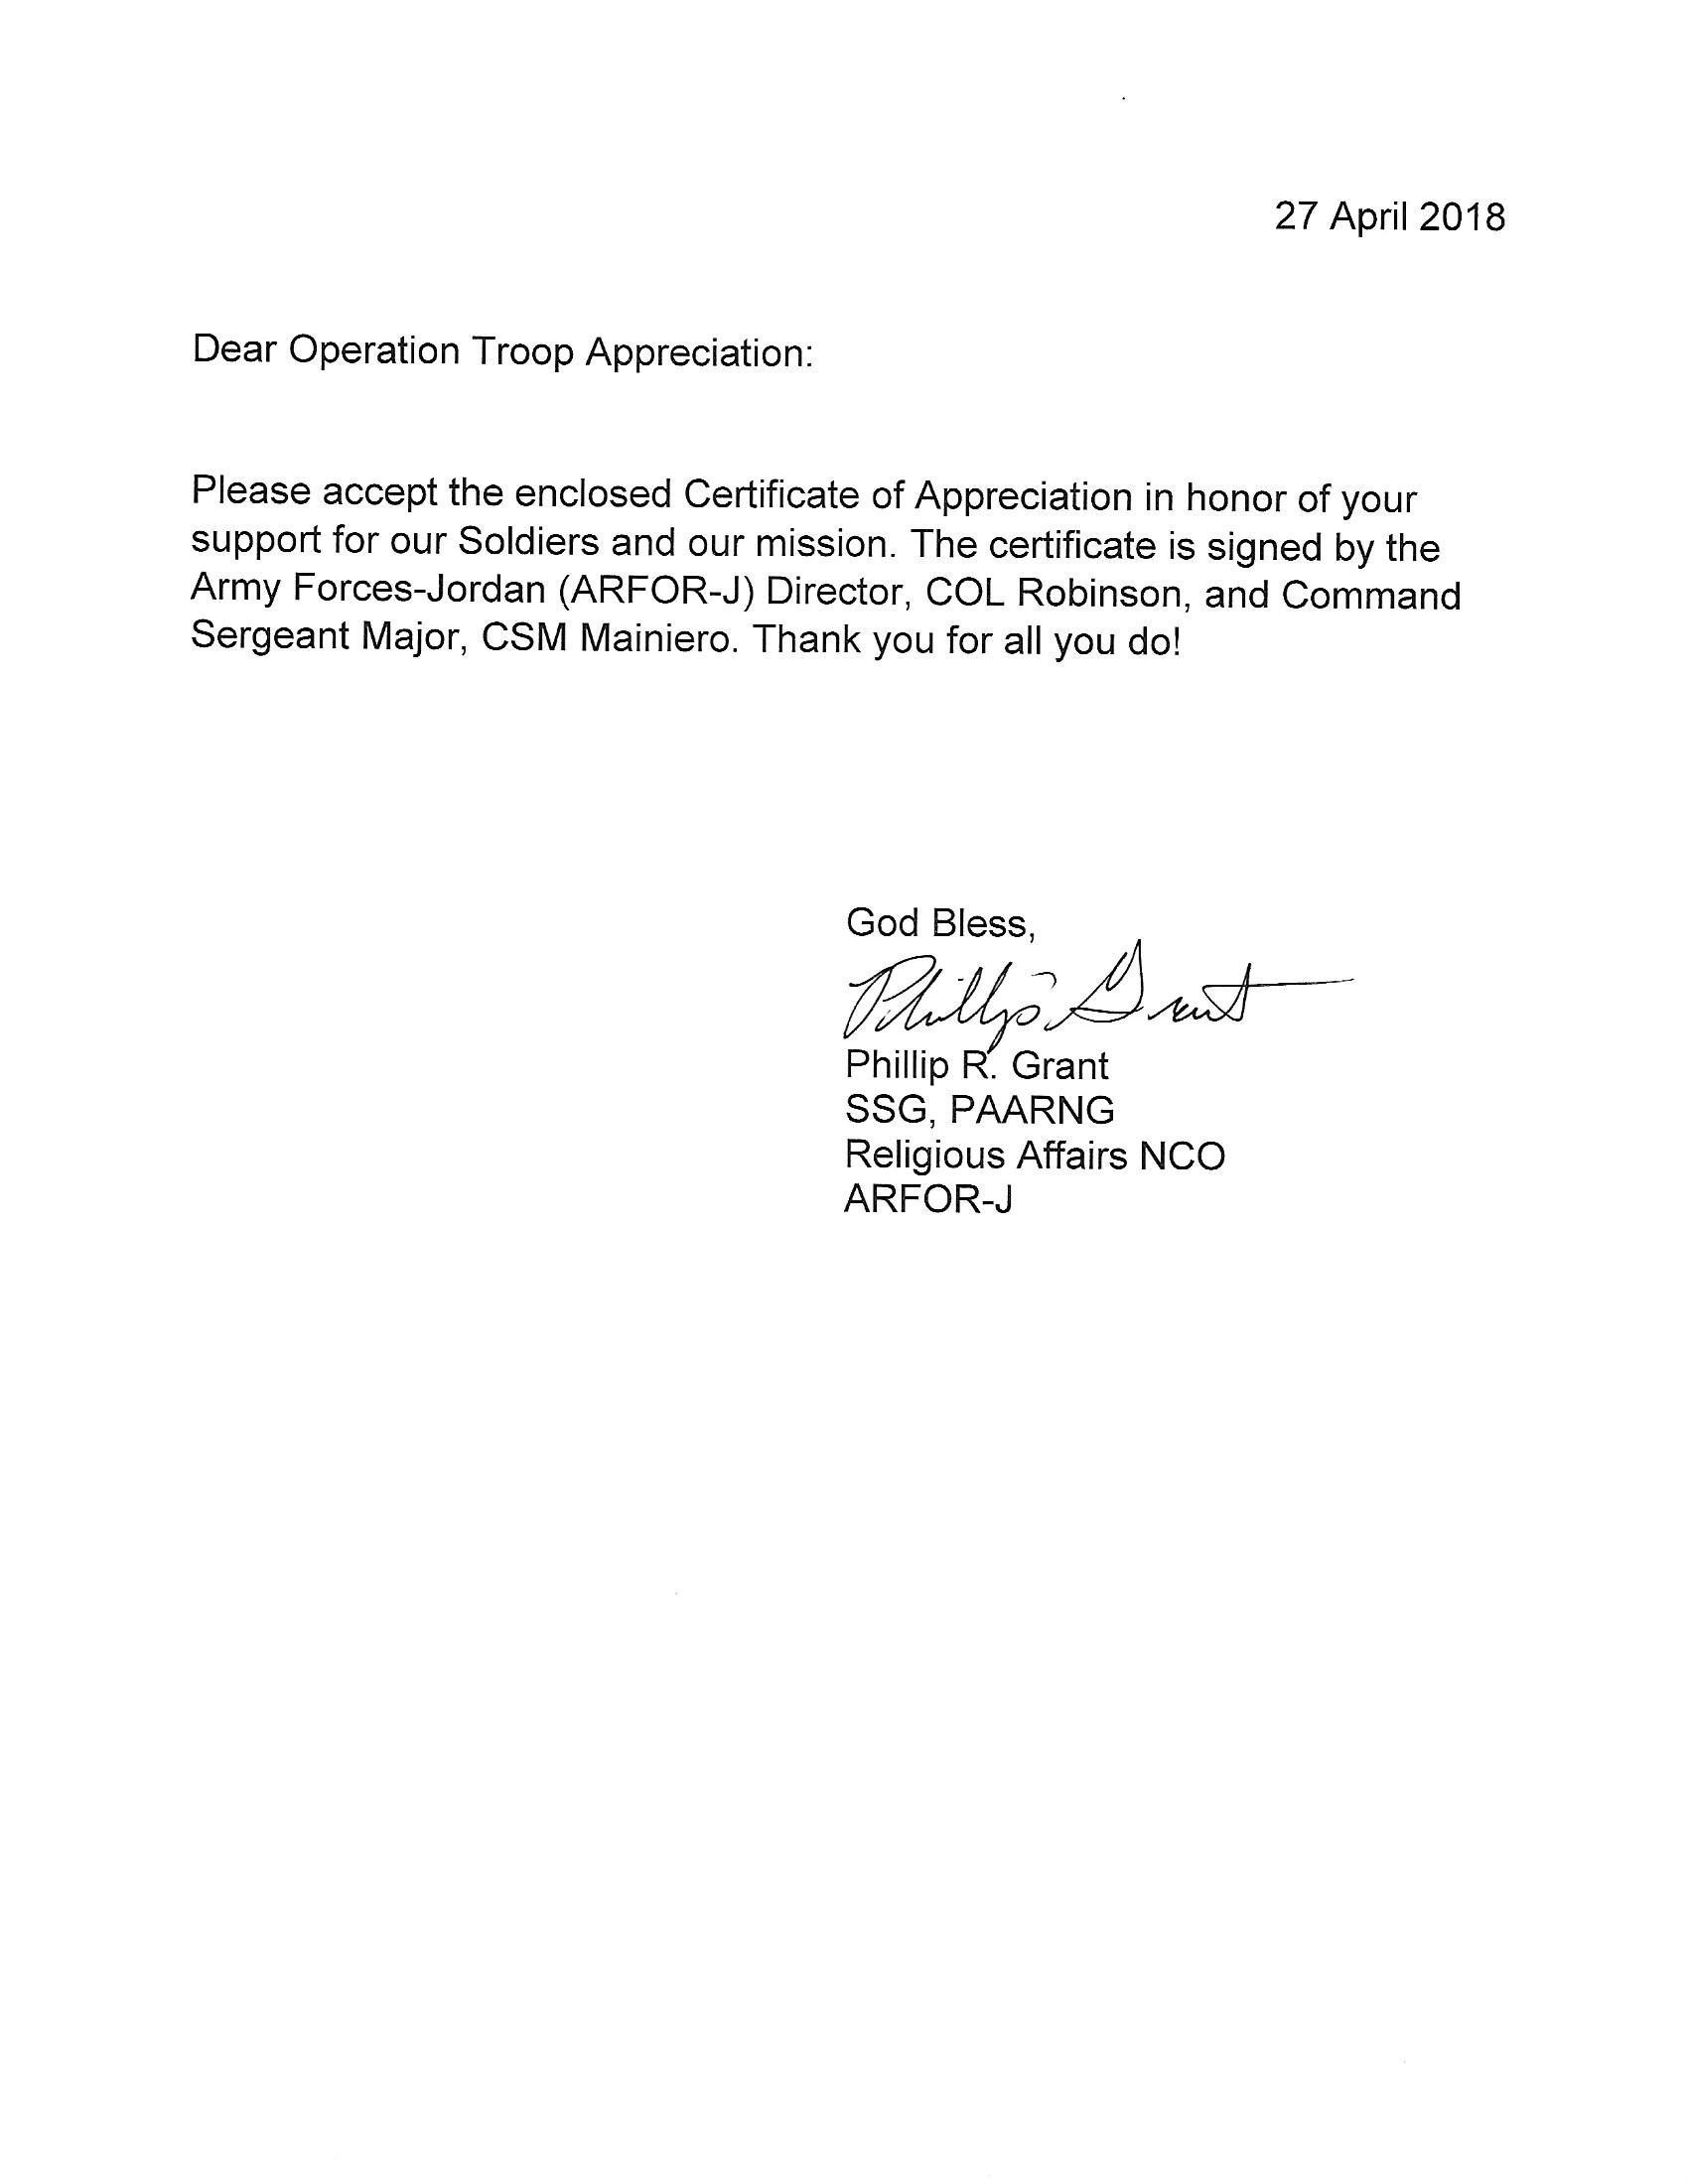 Letter Of Gratitude And Thanks from operationtroopappreciation.org